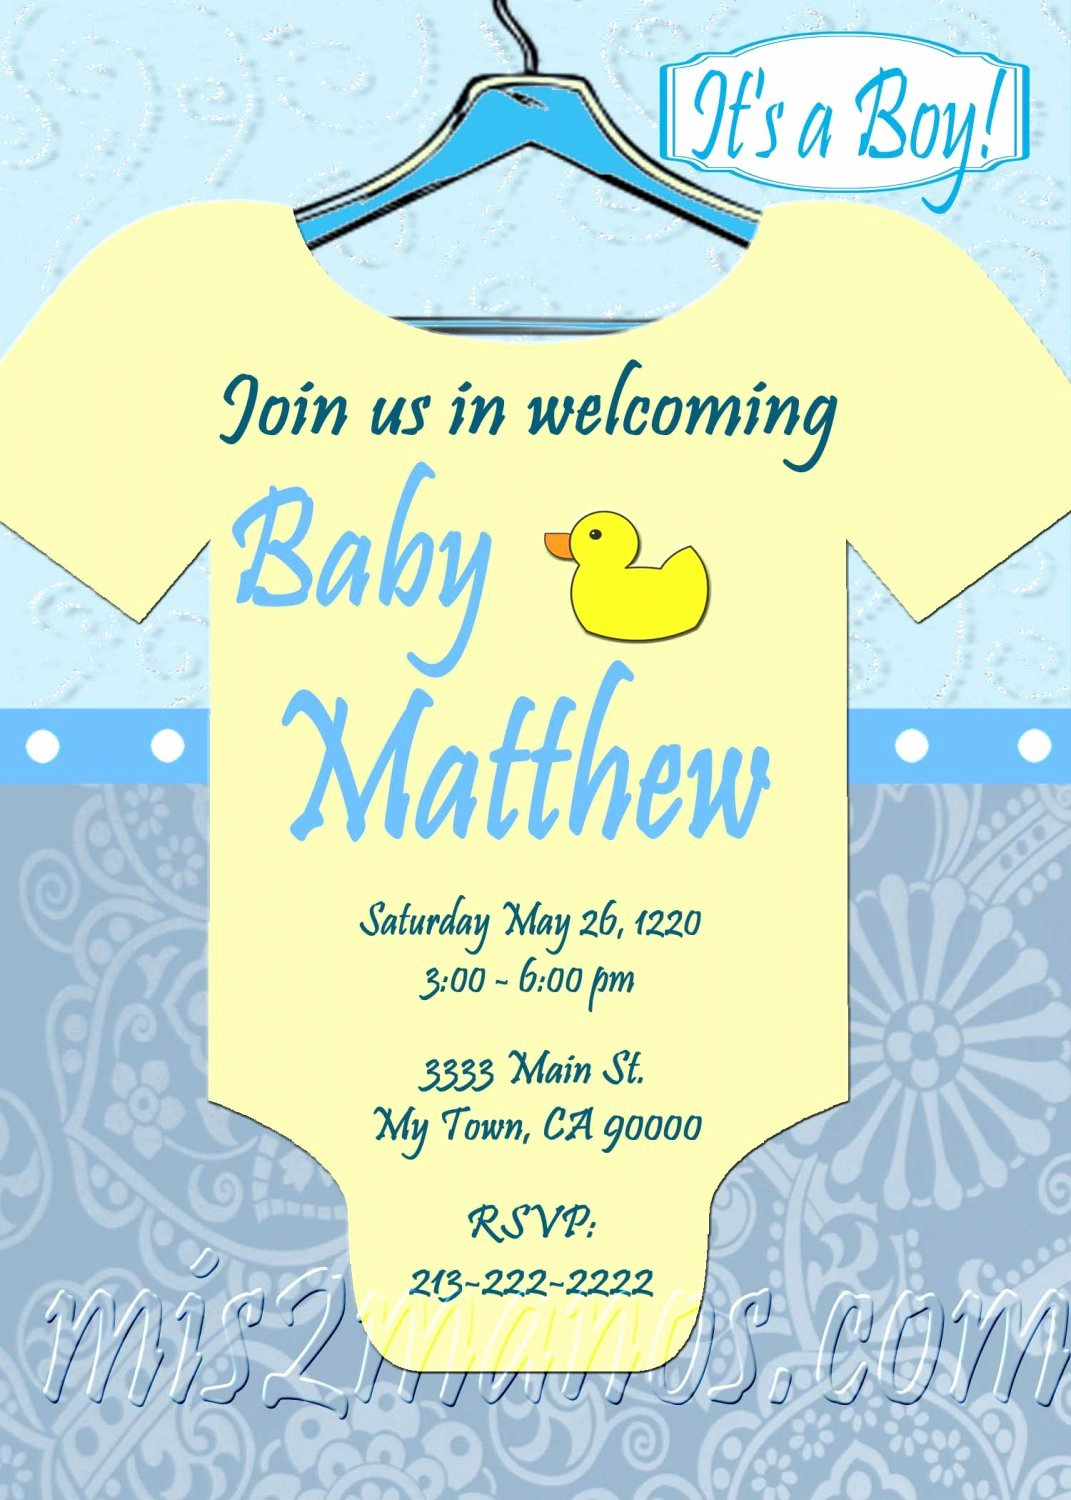 Onesie Invitation Template Printable New Baby Shower Esie Invitations Printable Baby Boy Custom order Party Diy Download and Print